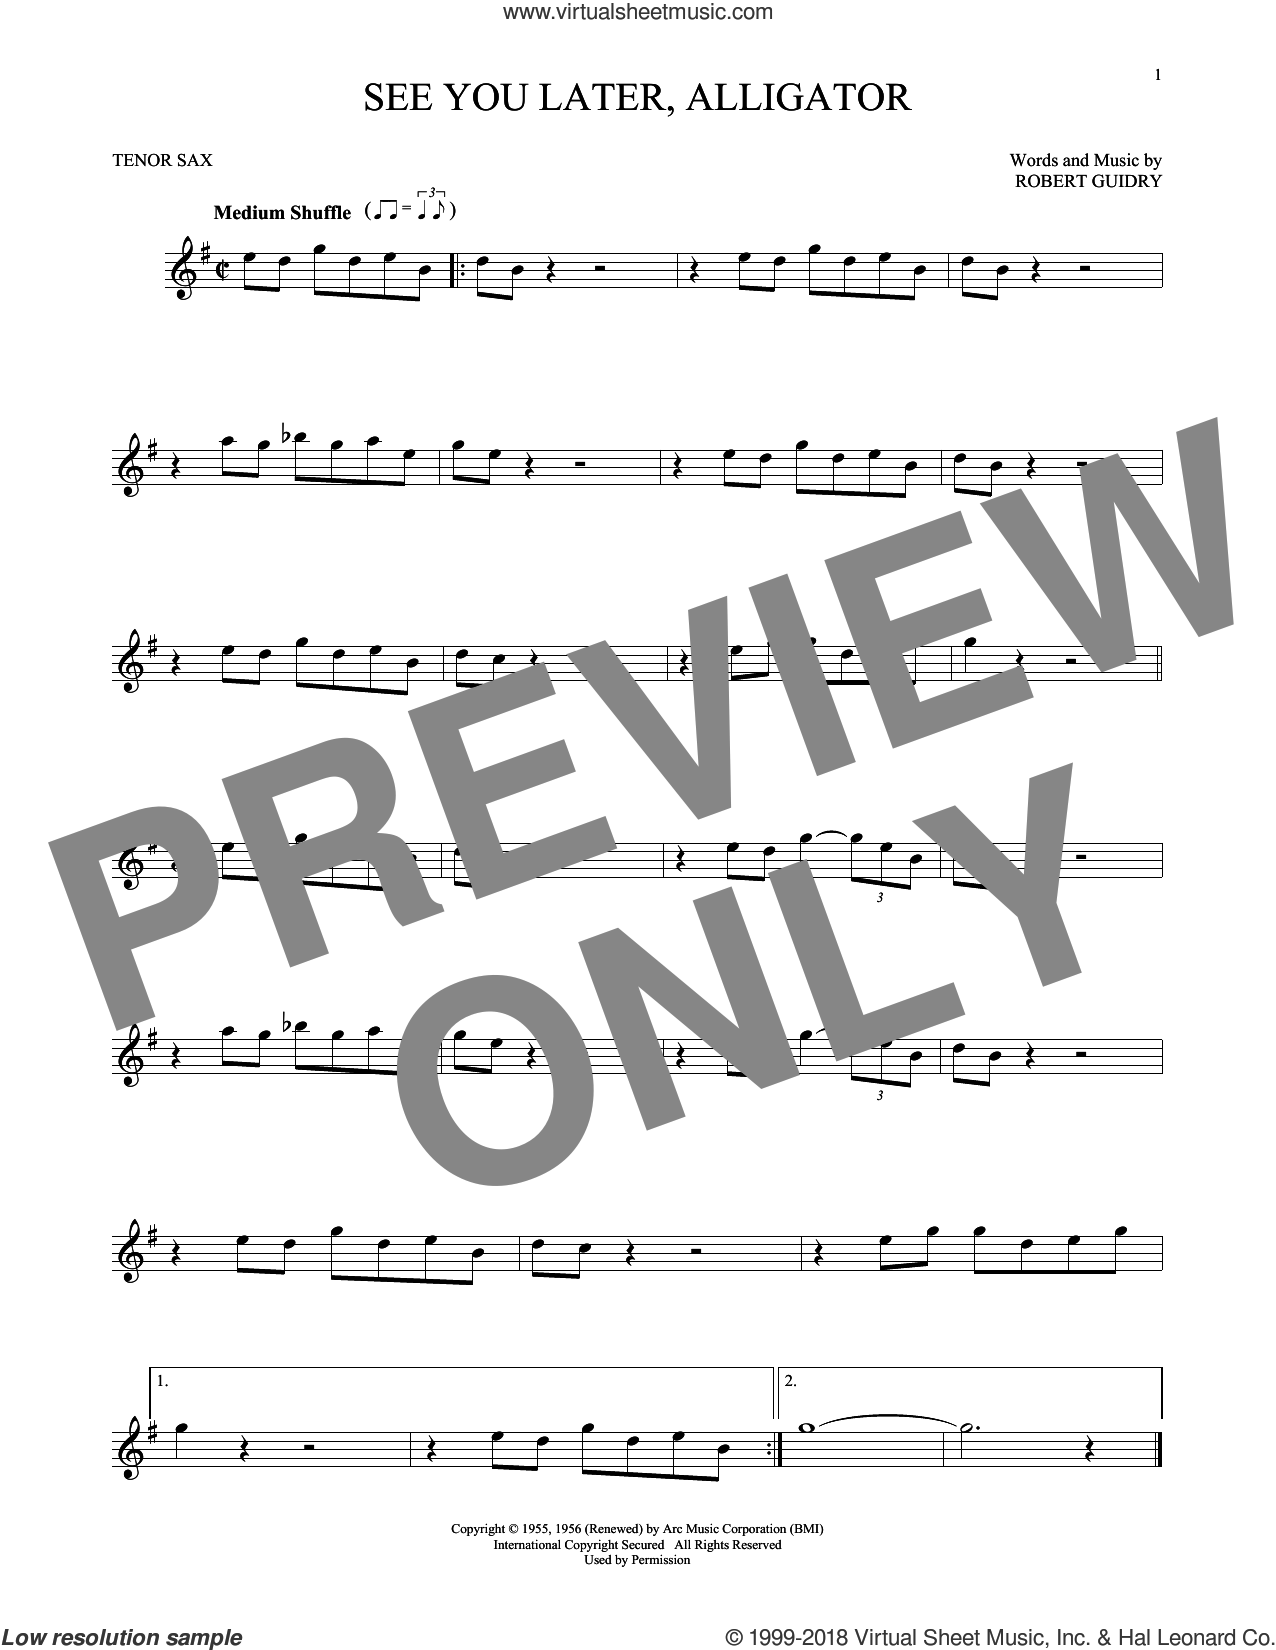 See You Later, Alligator sheet music for tenor saxophone solo by Bill Haley & His Comets and Robert Guidry, intermediate skill level